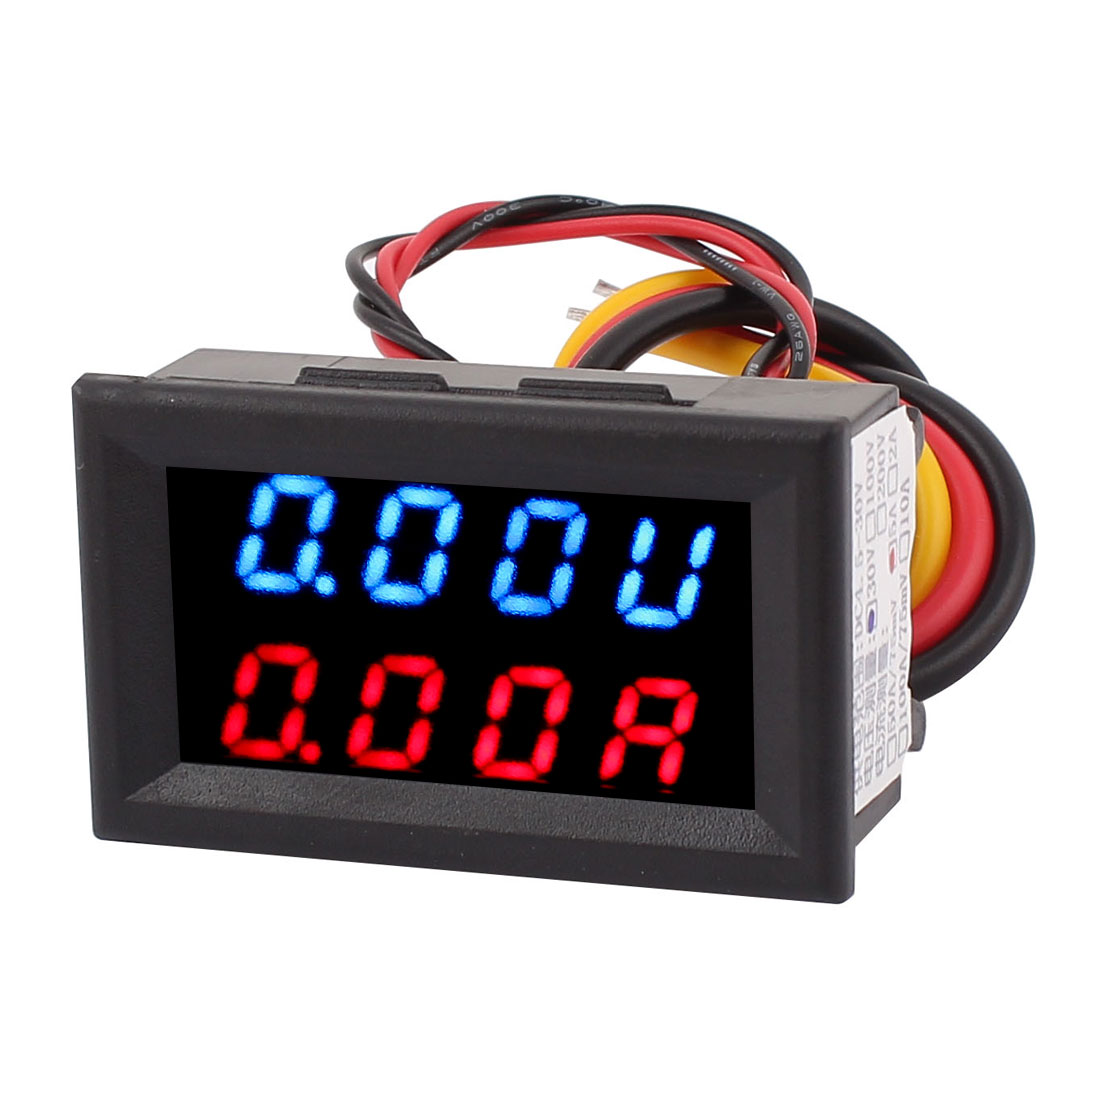 DC 0-30V 5A Blue Red LED Dual Digital Display Panel Voltmeter Ammeter Meter New